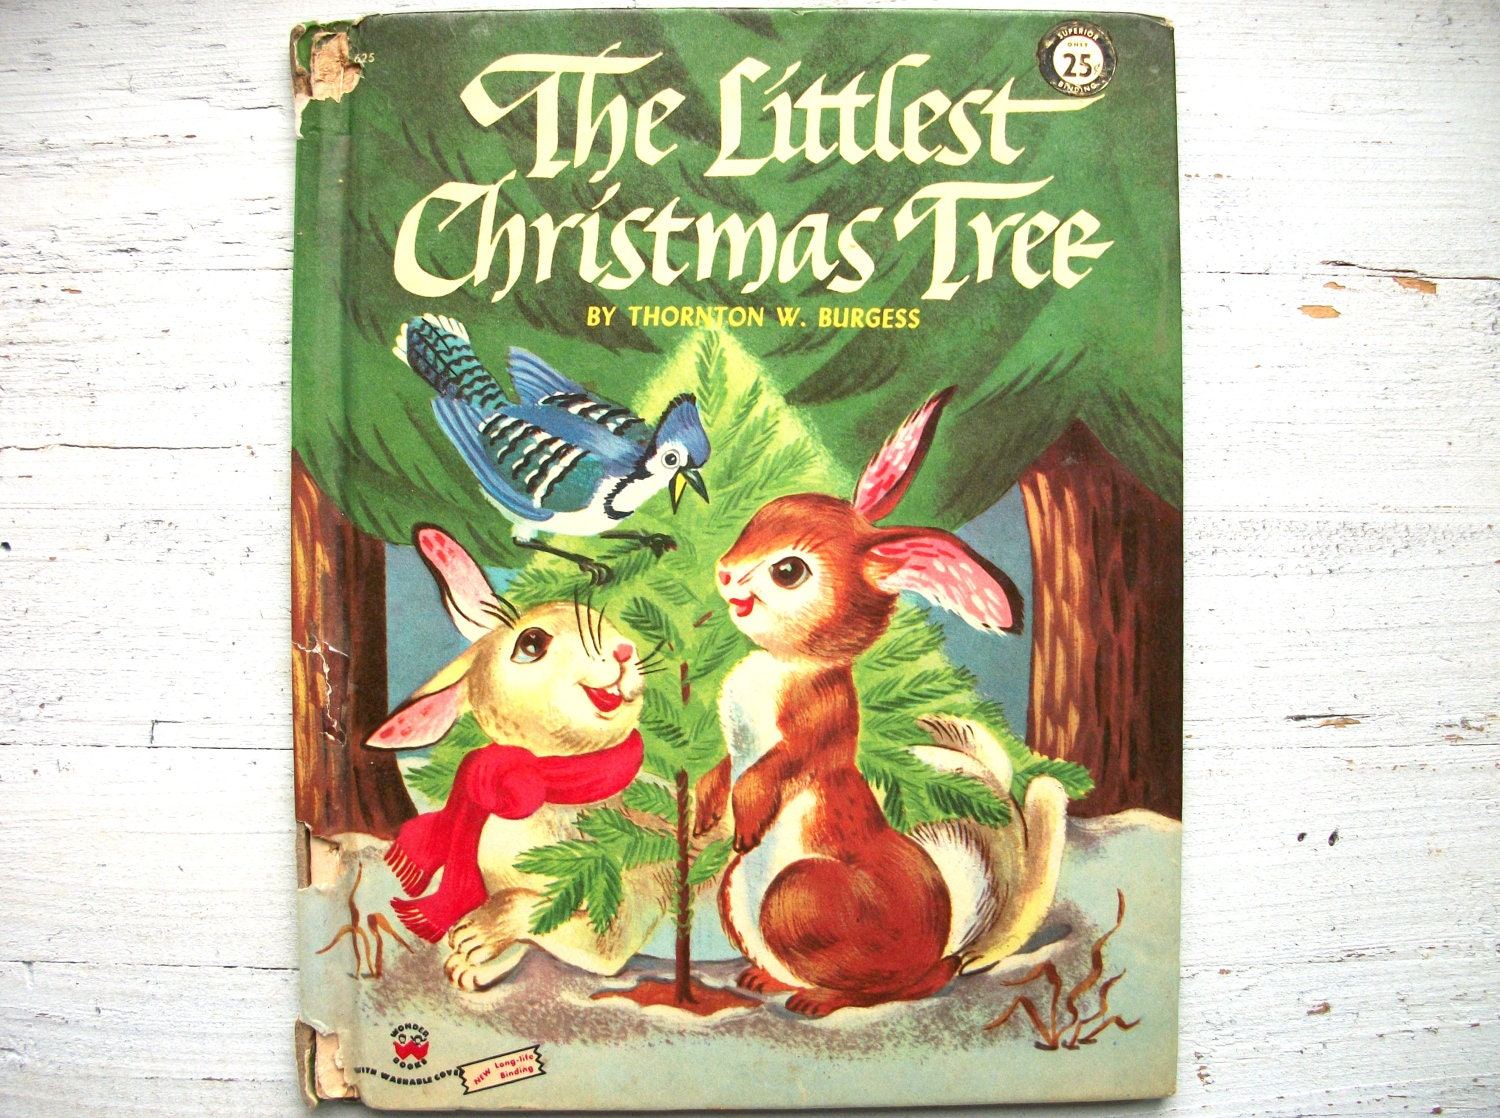 Vintage 1950's Children's Book The Littlest Christmas